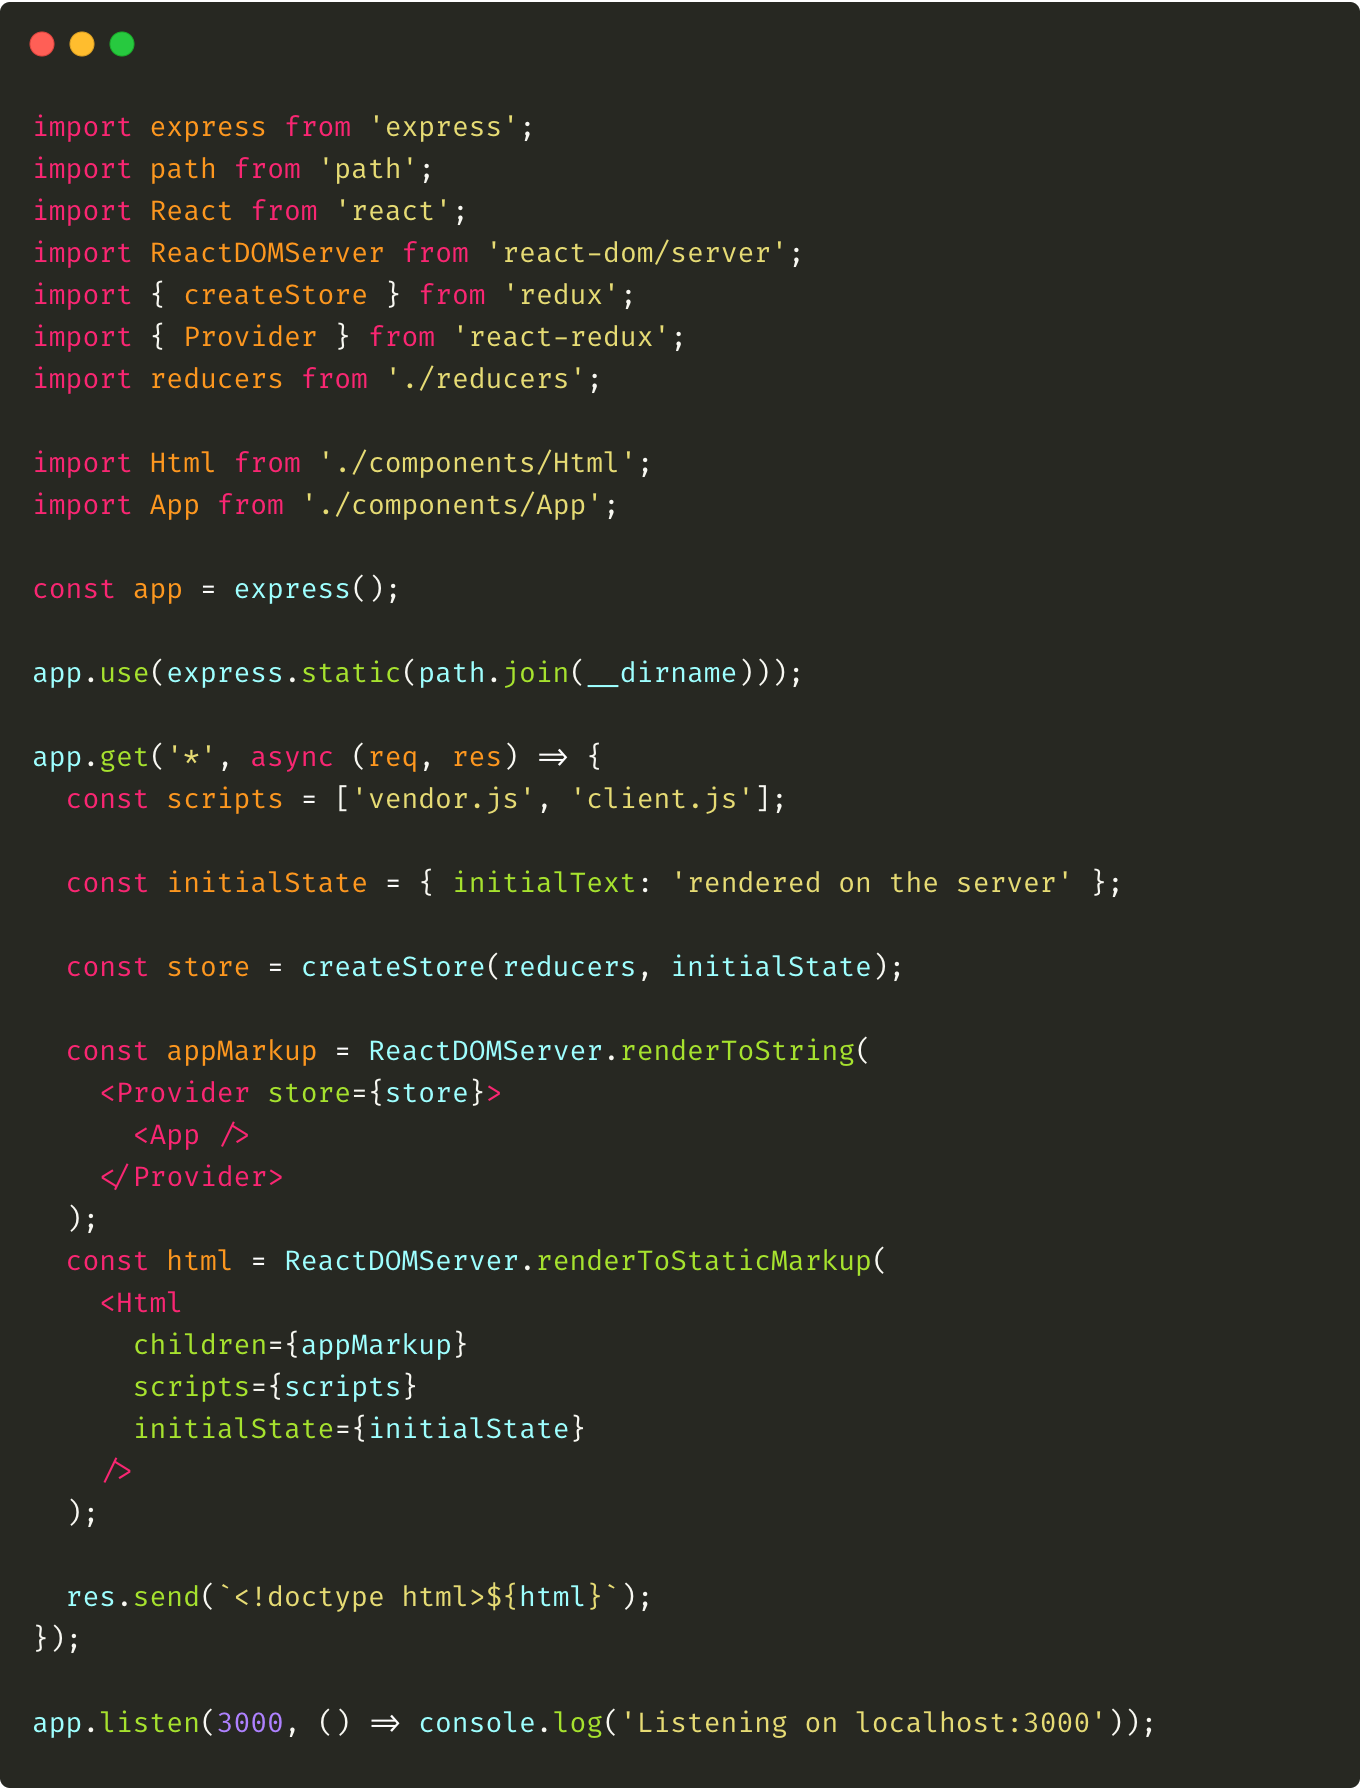 Modifications made in the server.js file